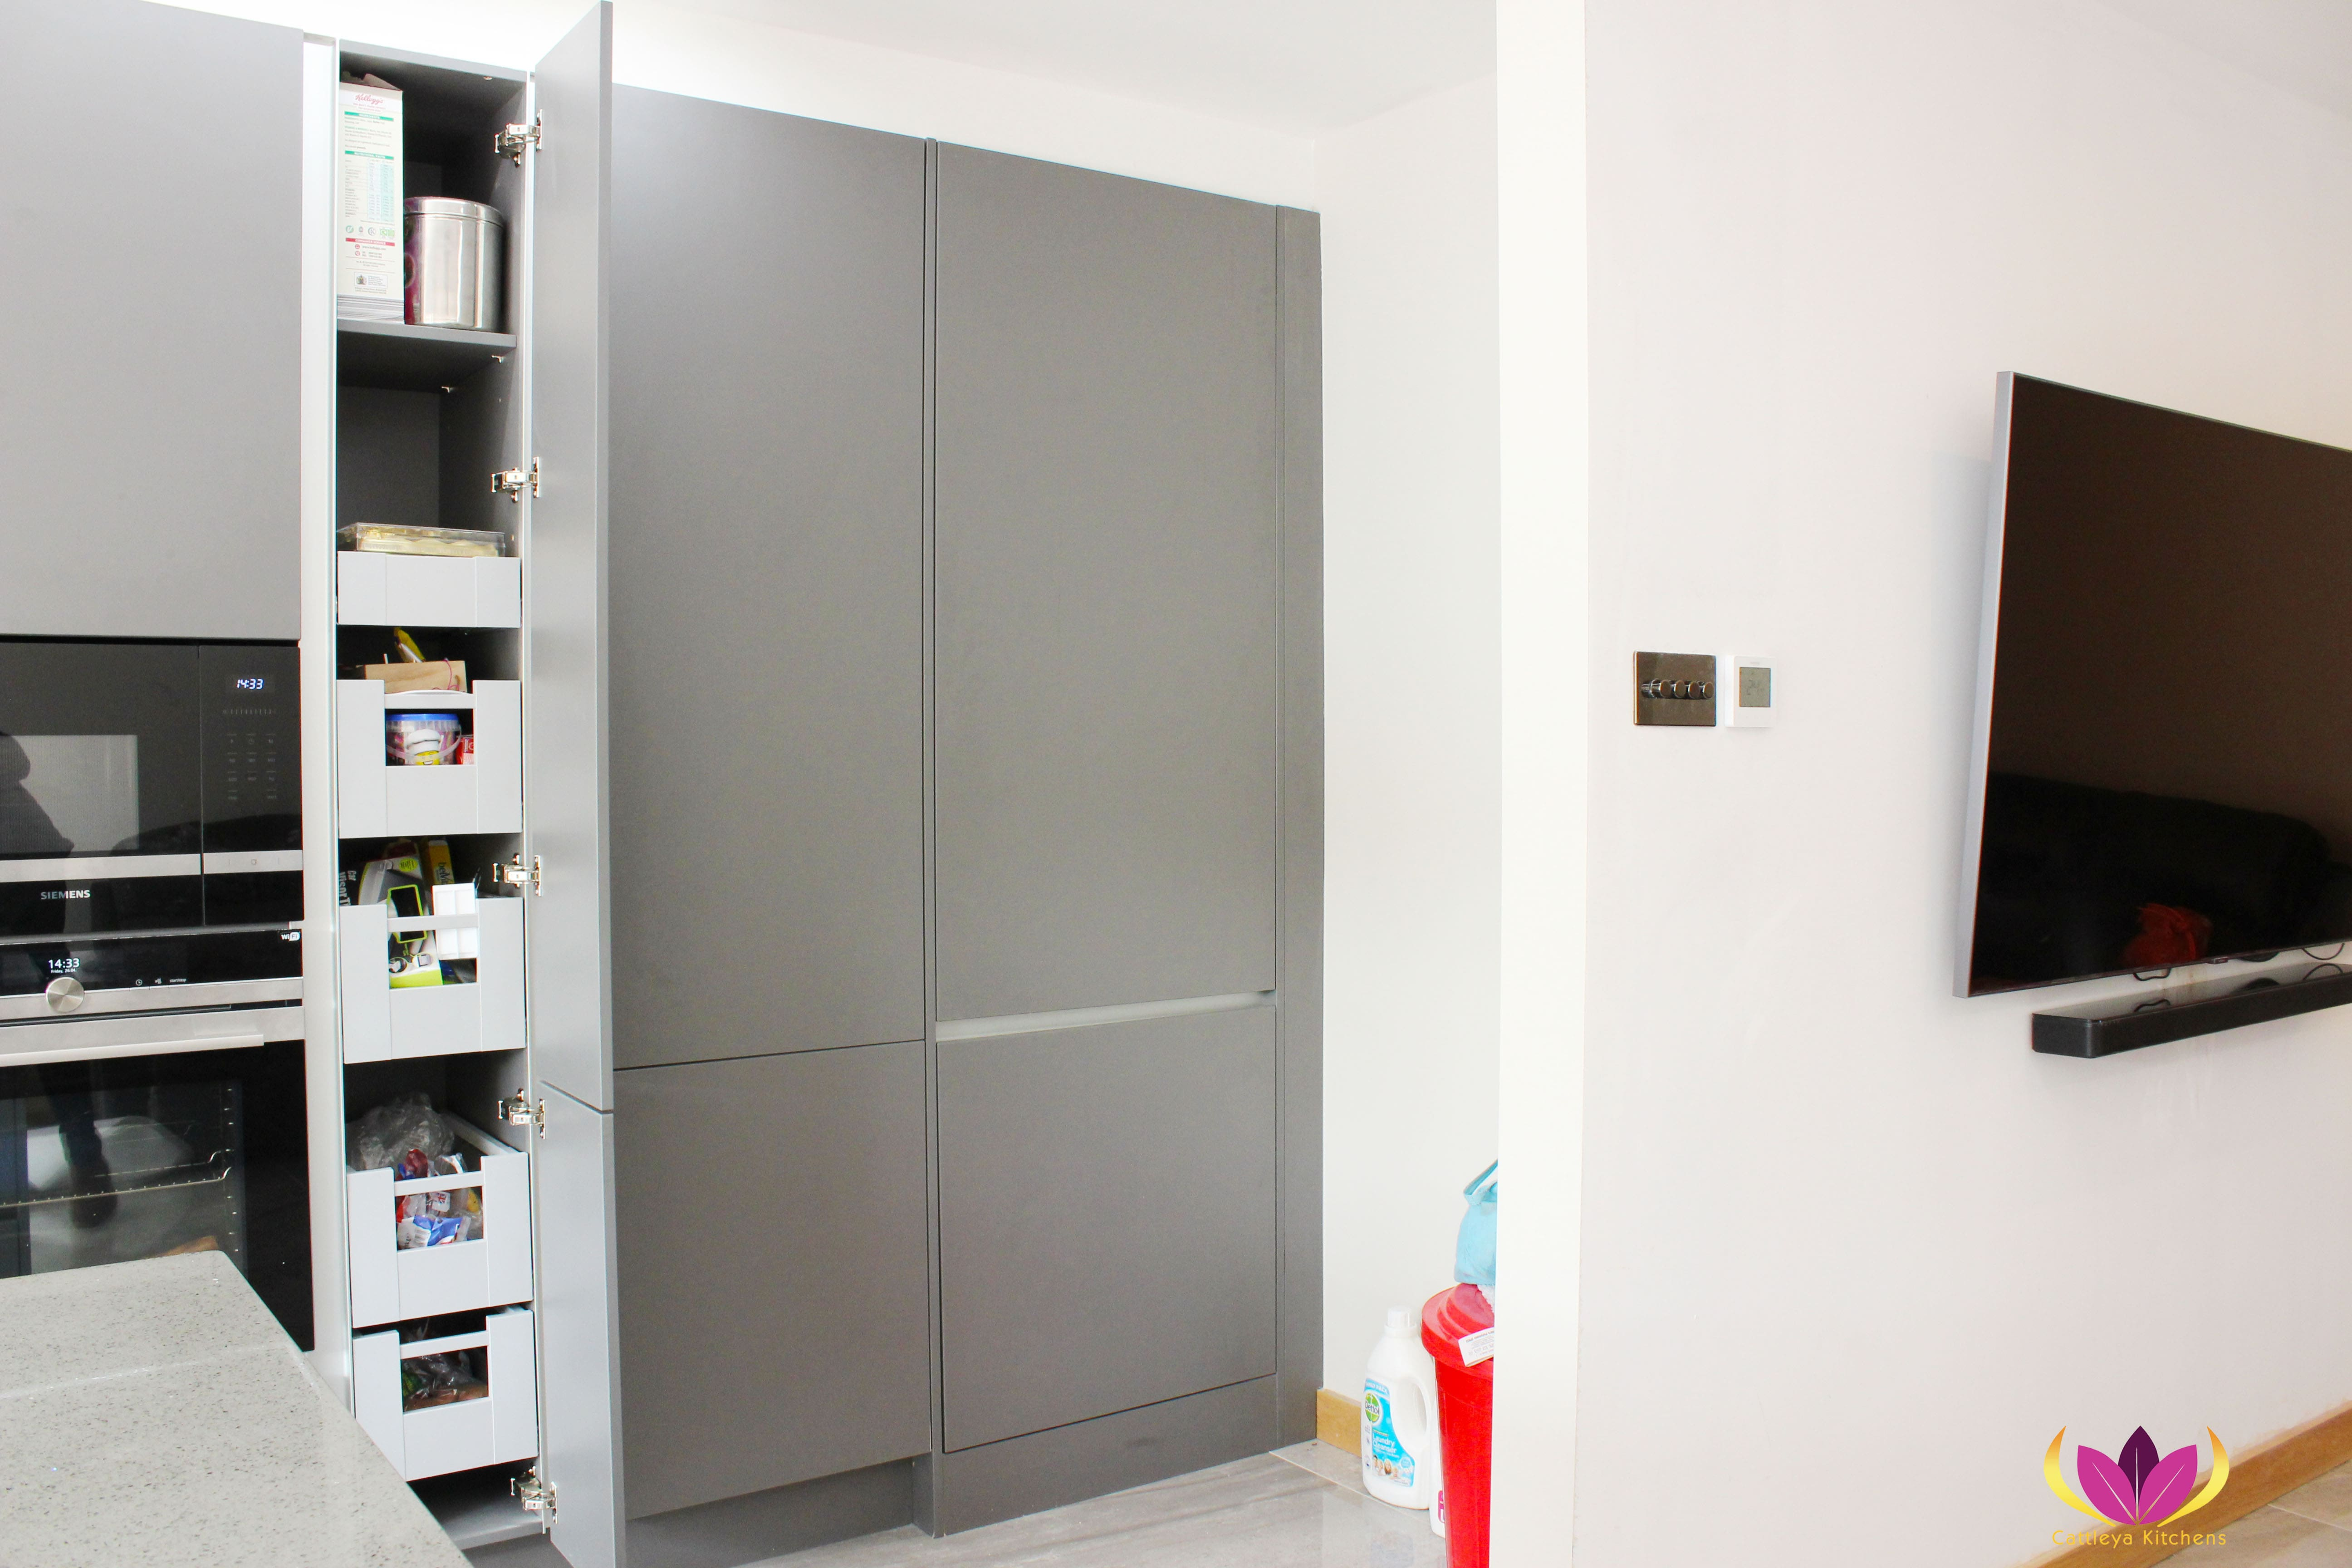 Gray Tall Cabinet with pullout boxes Perivale Finished Kitchen Project